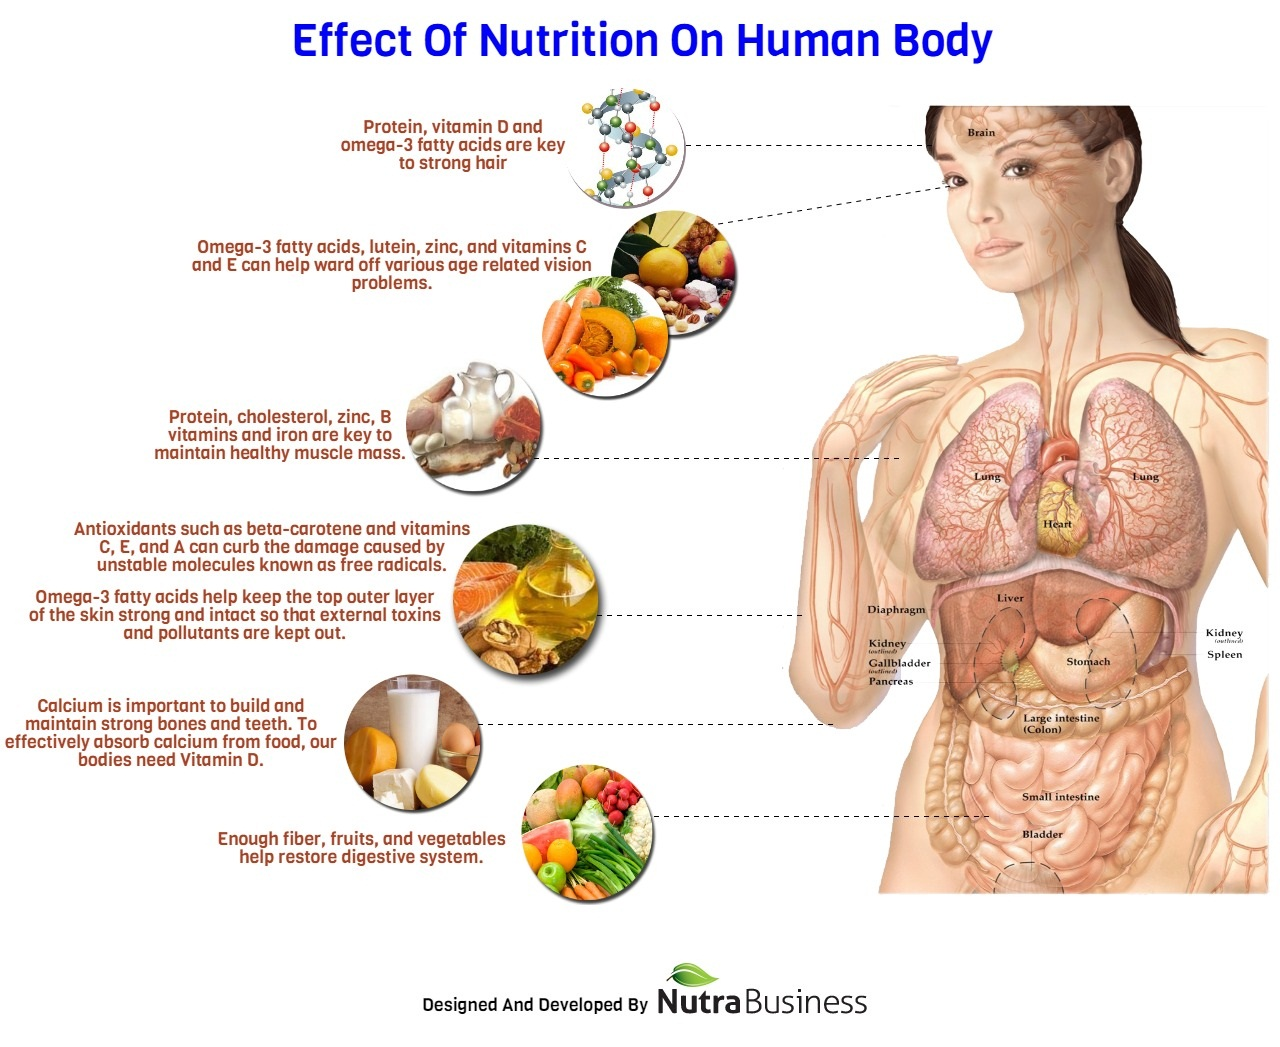 an overview of the body building supplements and their effect on the human body Hgh or human growth hormone has body building products that are known as the best bodybuilding supplements customers should purchase these supplements after.